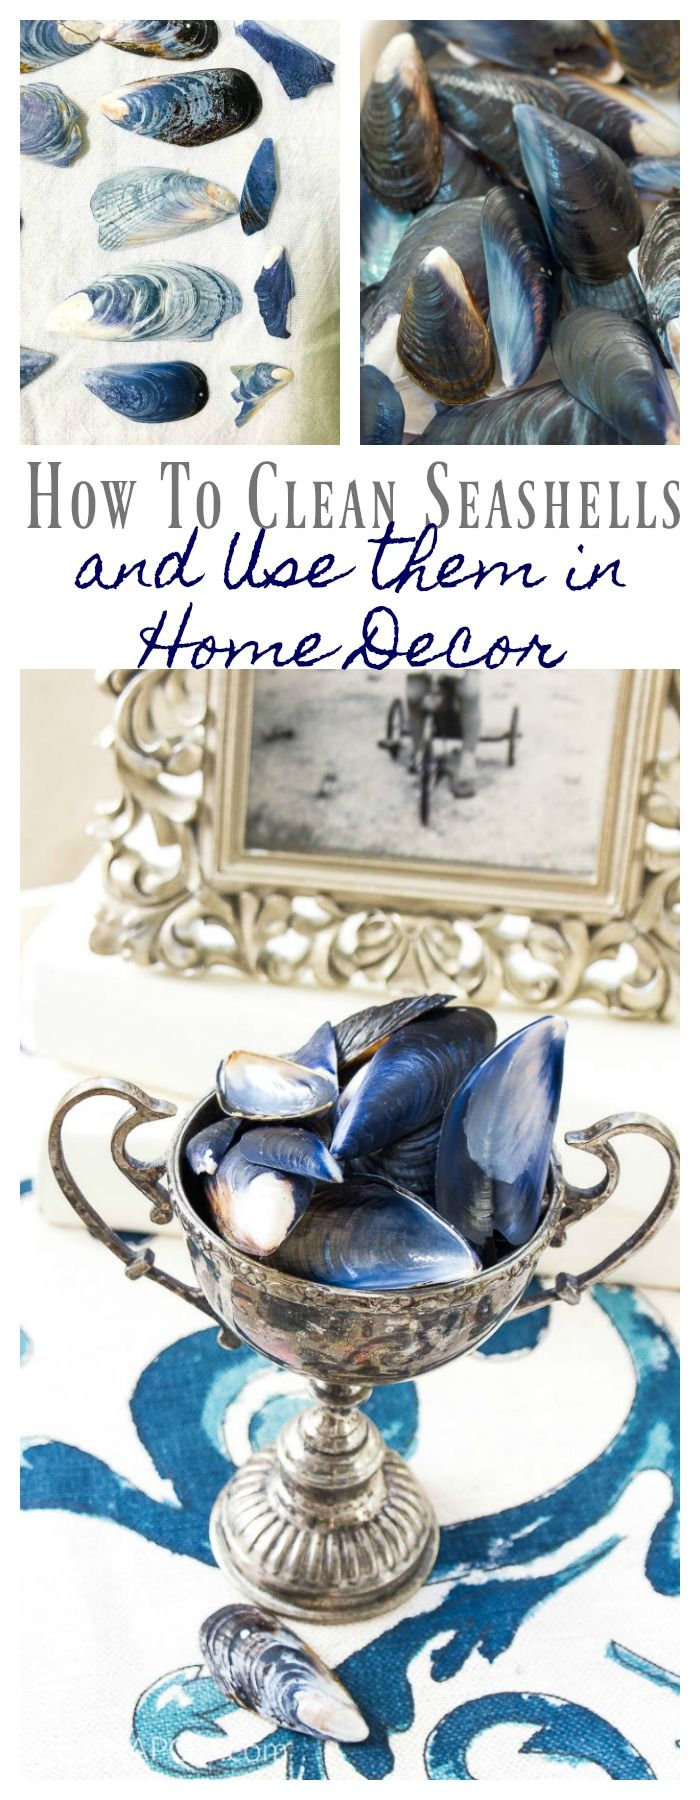 How to Clean Seashells After Your Beach Trip -   12 mussel shell crafts ideas